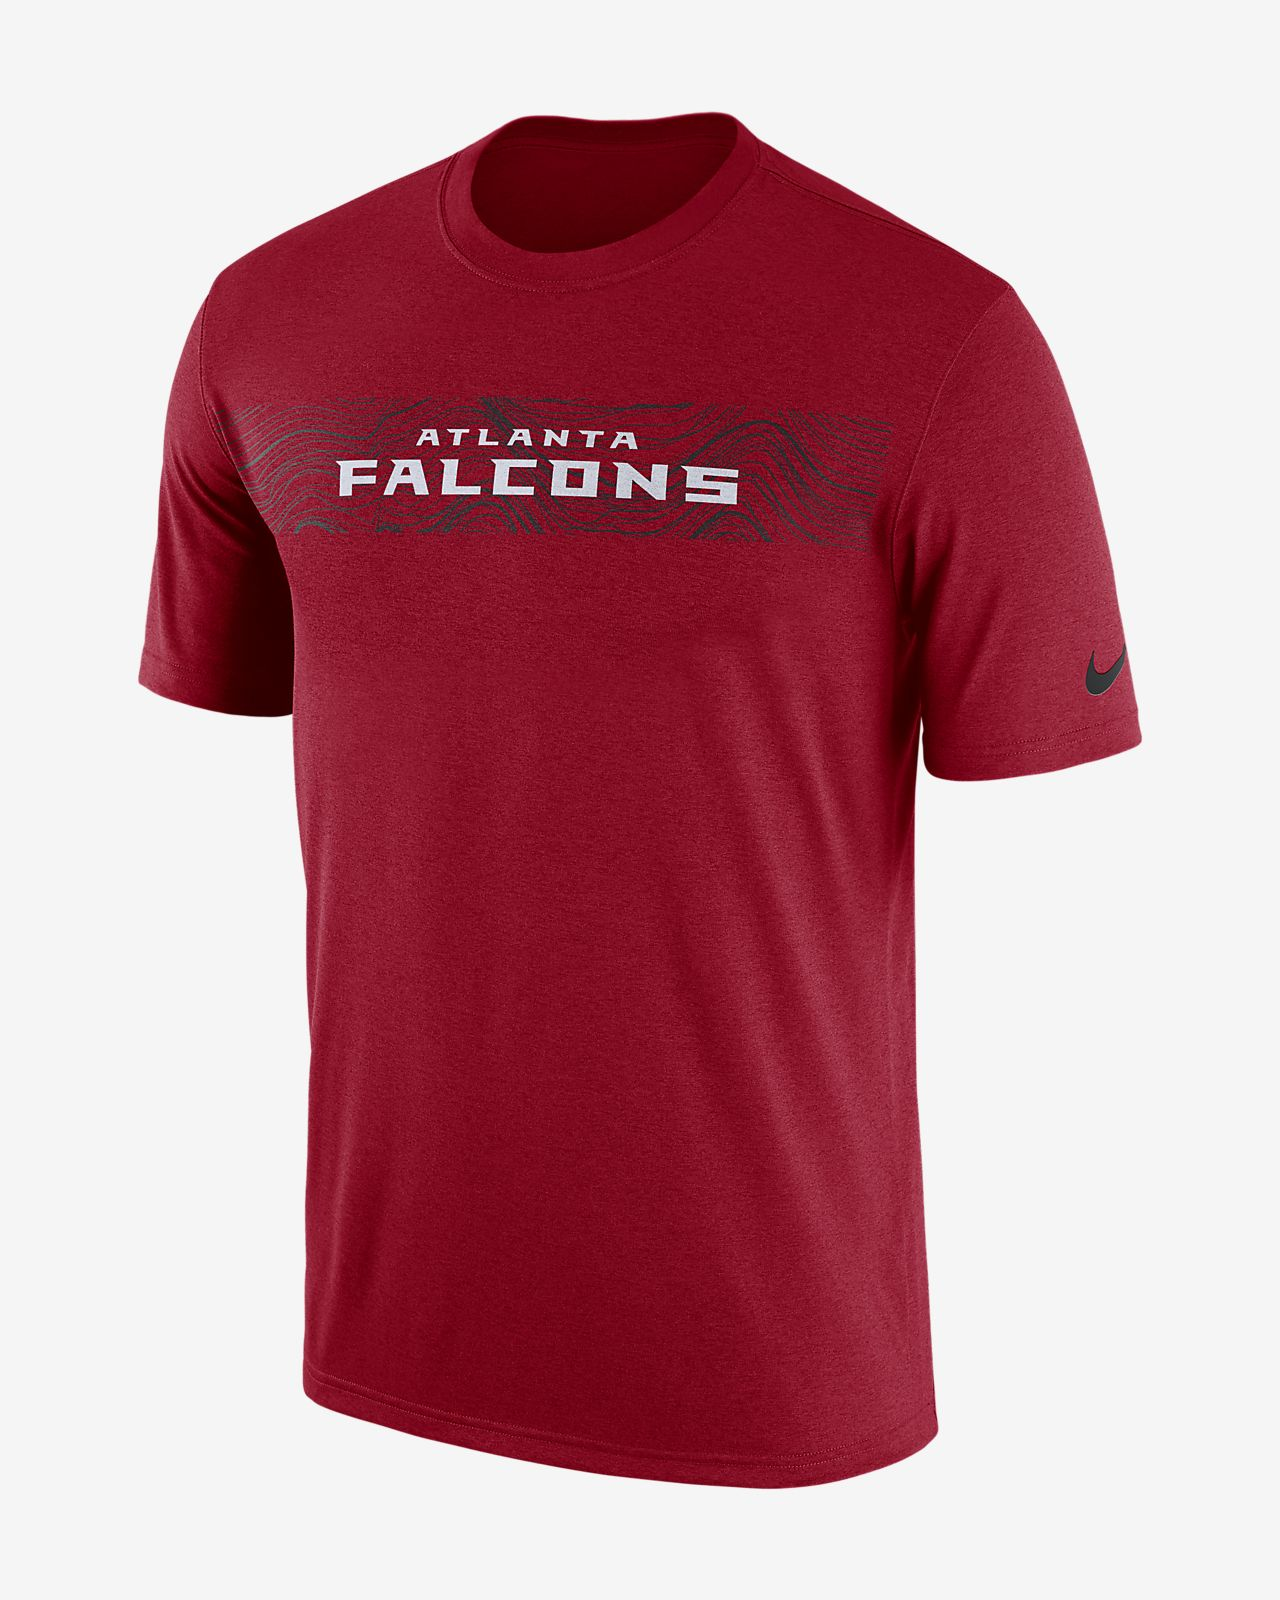 Nike Dri-FIT Legend Seismic (NFL Falcons) Men's T-Shirt